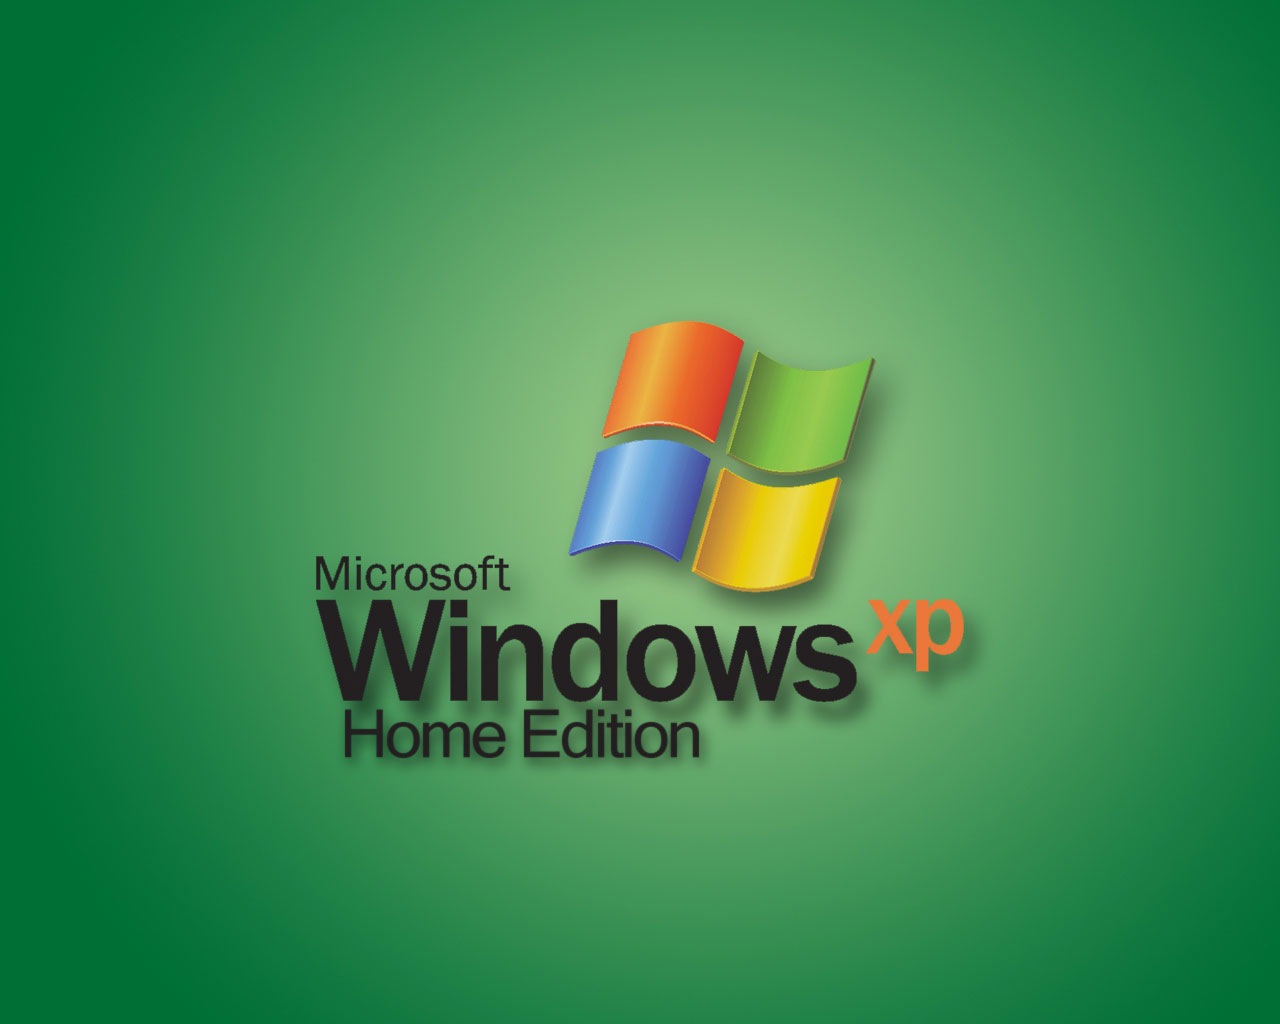 Windows Xp Home Edition Wallpaper | Free | Download